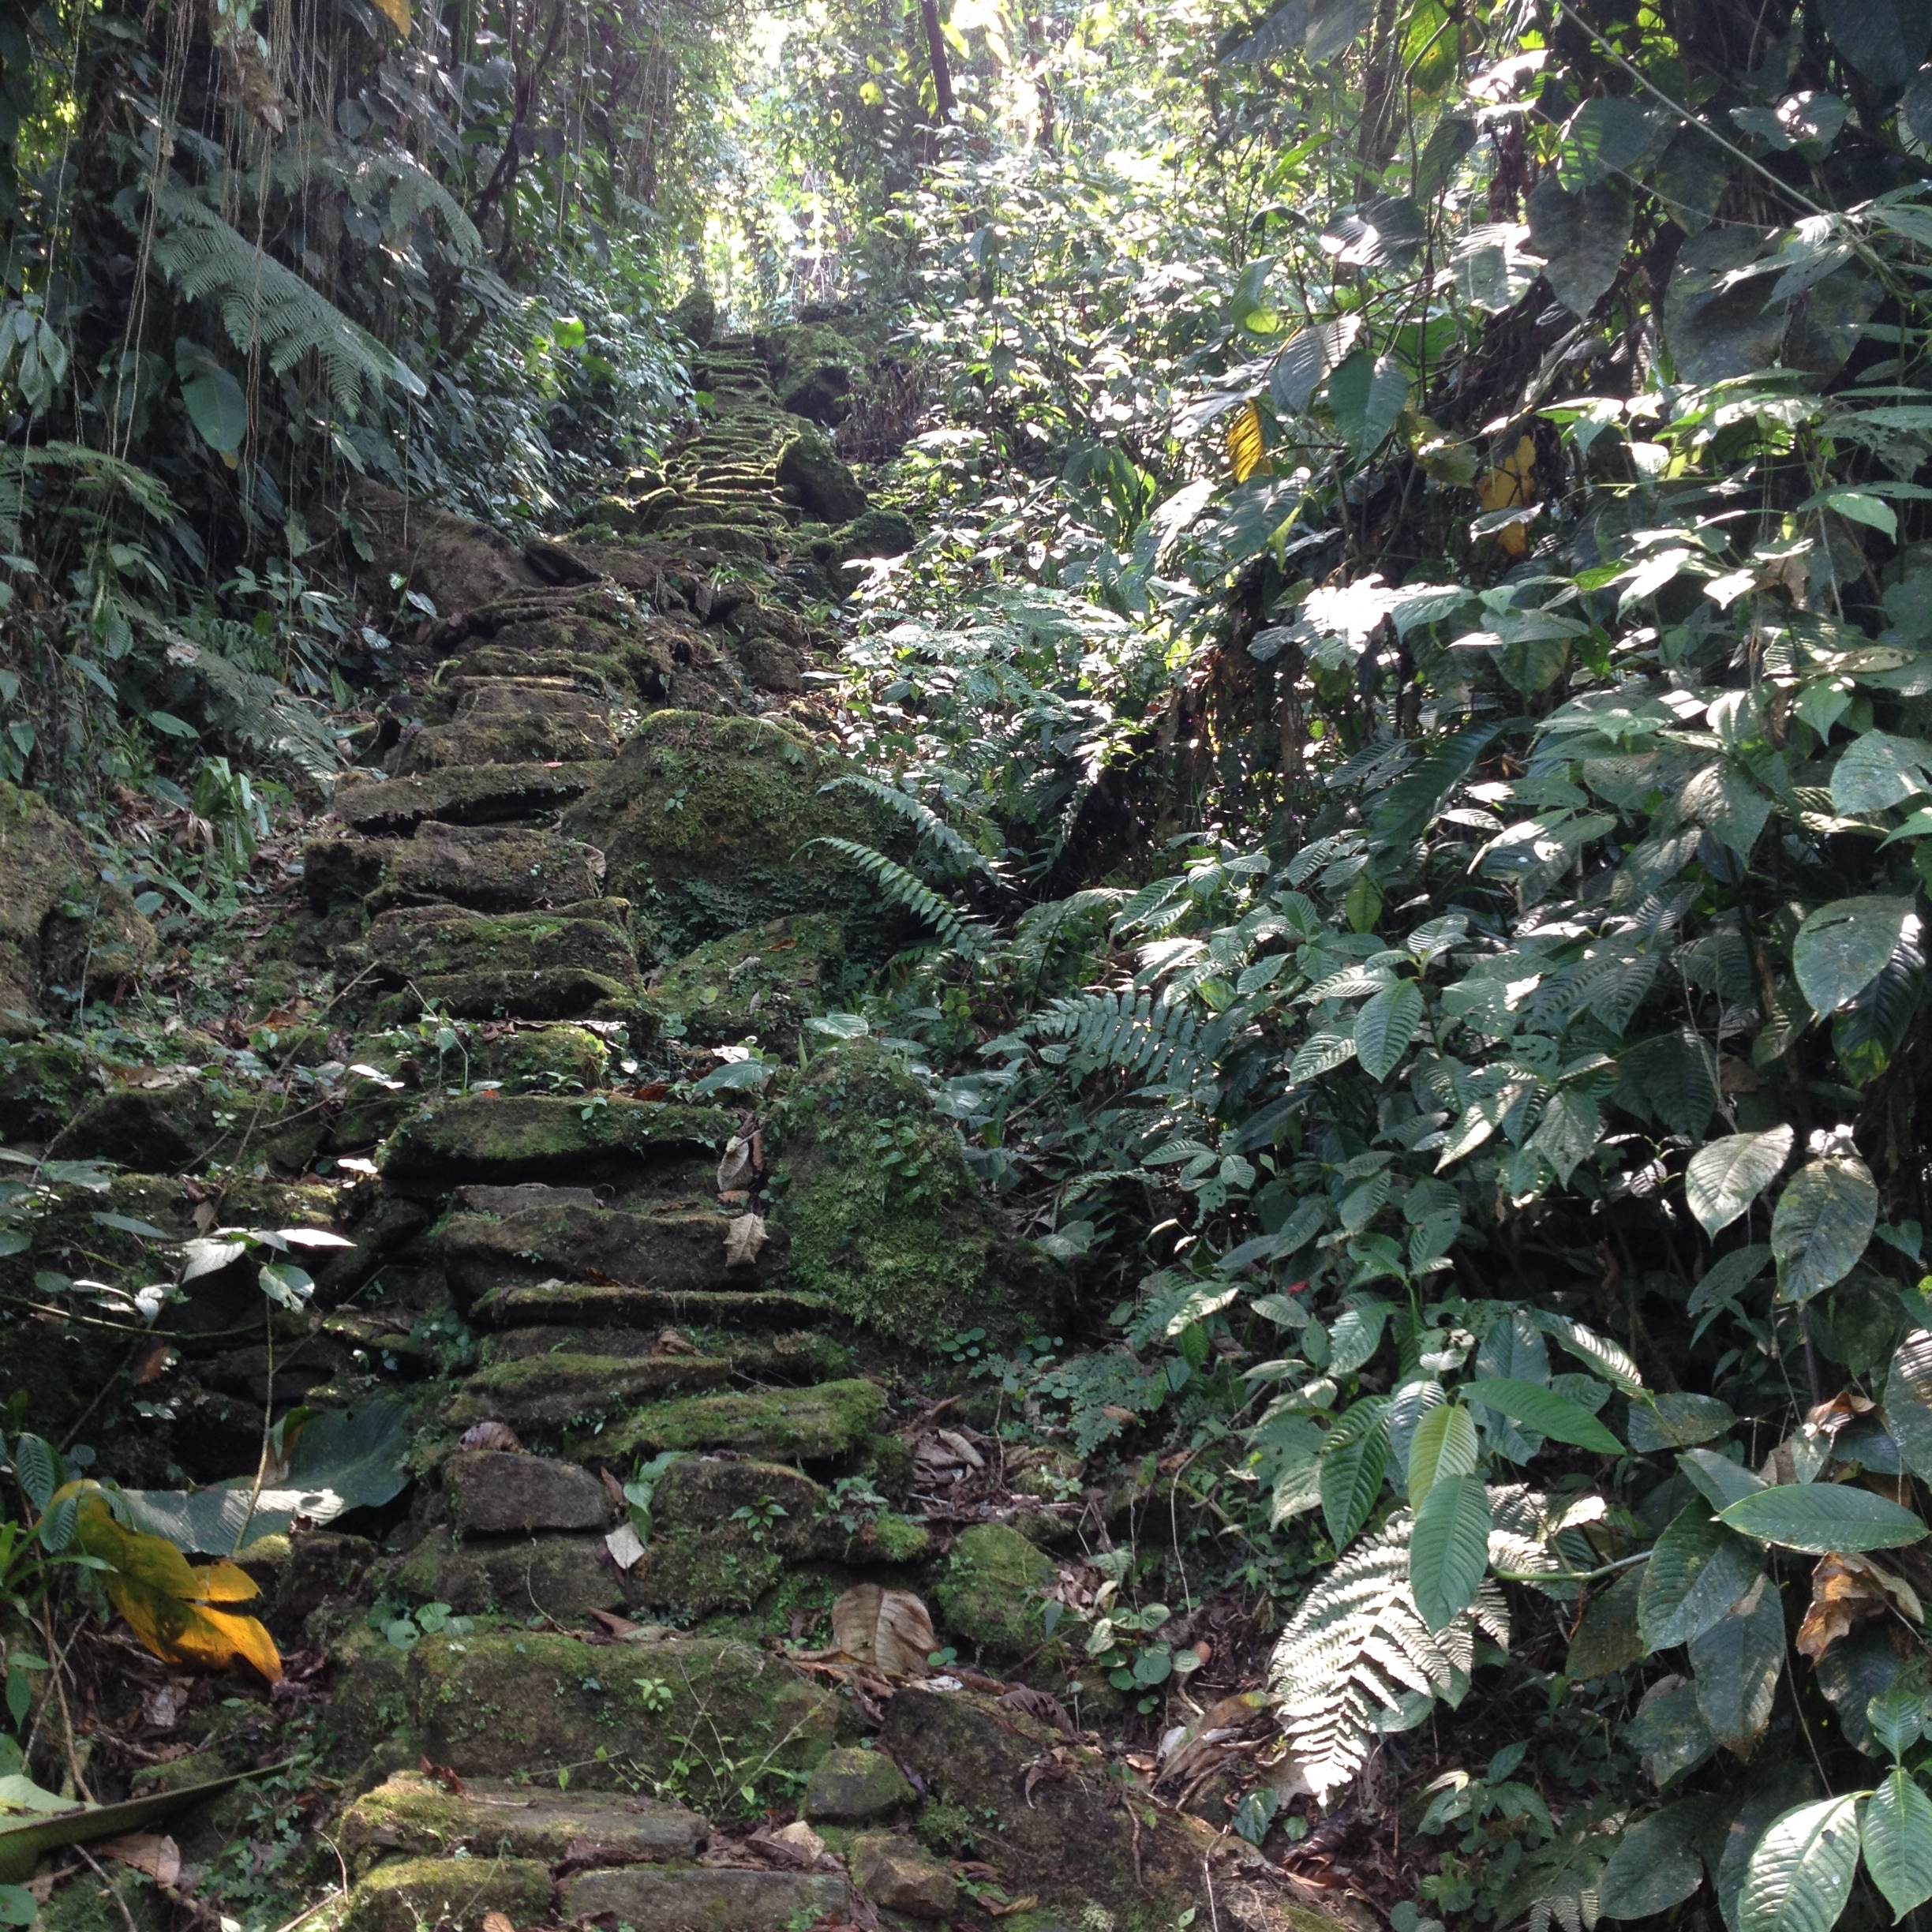 1200 steep rock steps lead to the Lost City.